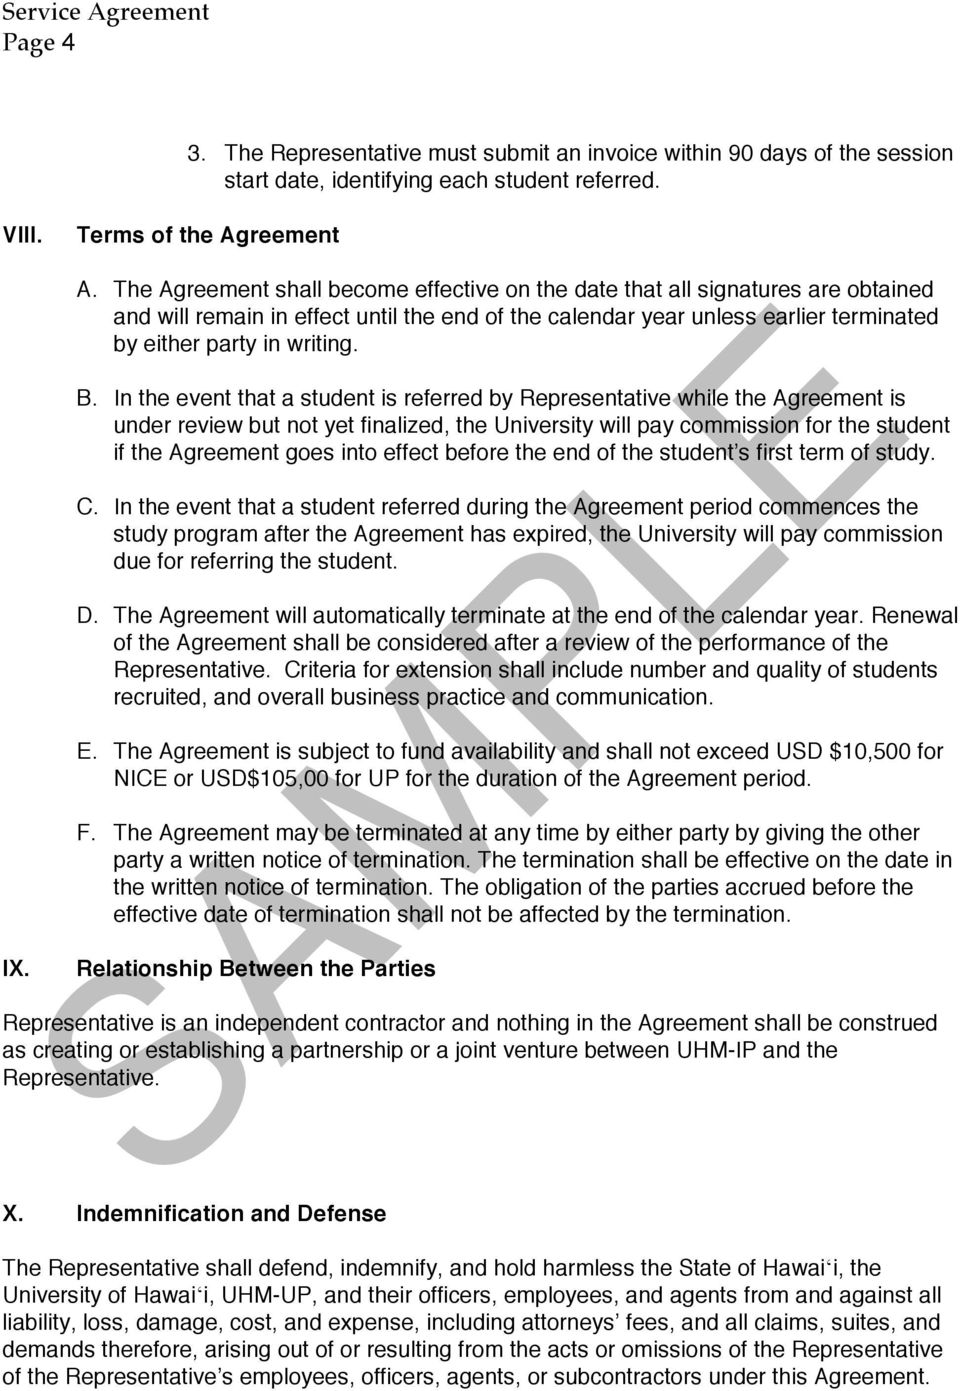 In the event that a student is referred by Representative while the Agreement is under review but not yet finalized, the University will pay commission for the student if the Agreement goes into